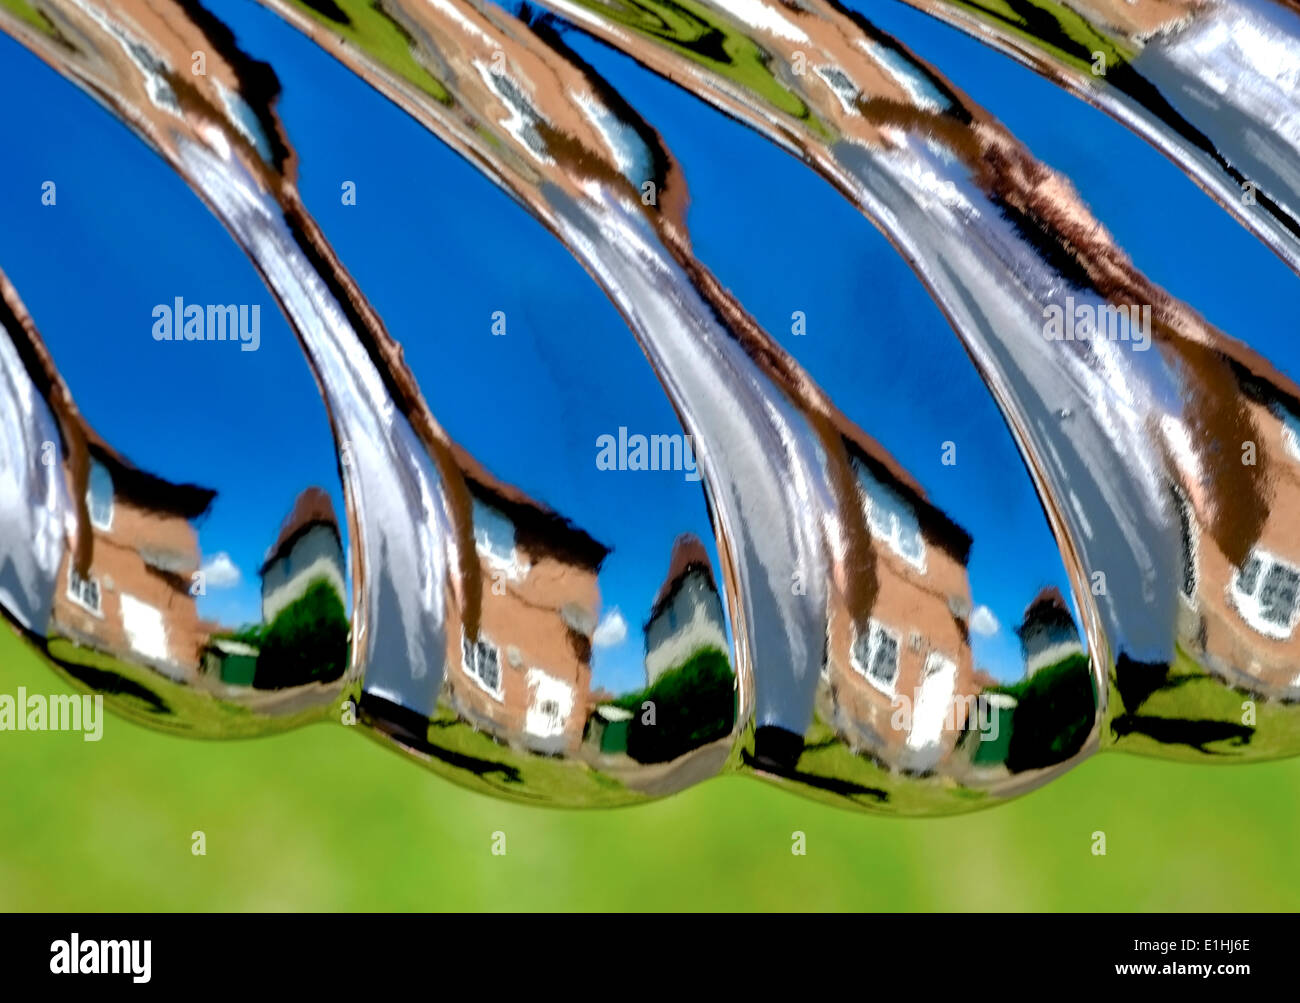 A warped image of a house and garden England uk. Reflection from a garden ornament - Stock Image